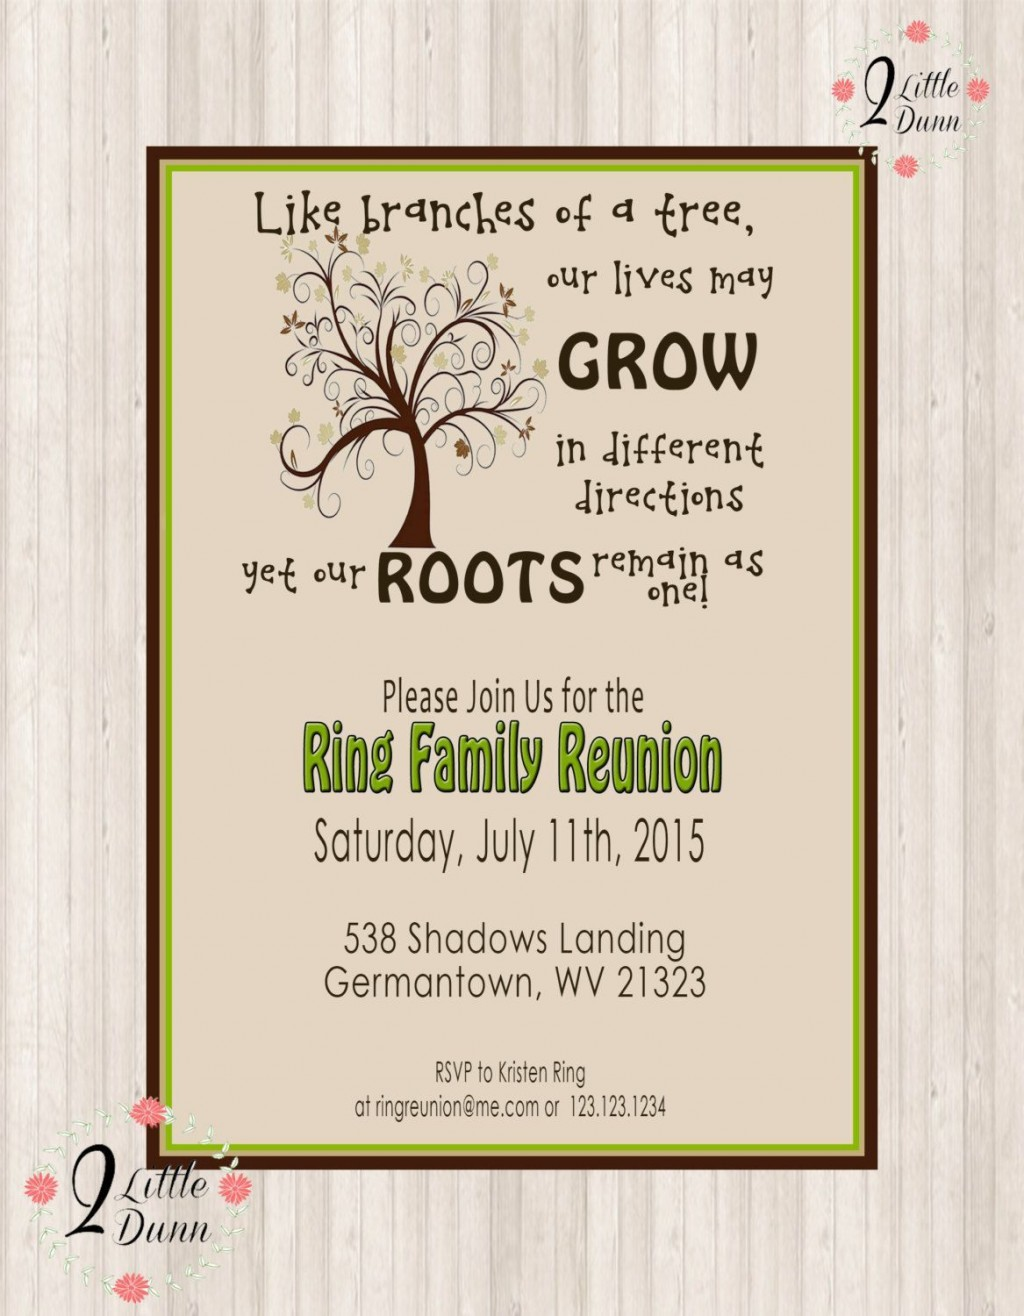 002 Fascinating Family Reunion Flyer Template Example  Templates Free ForLarge